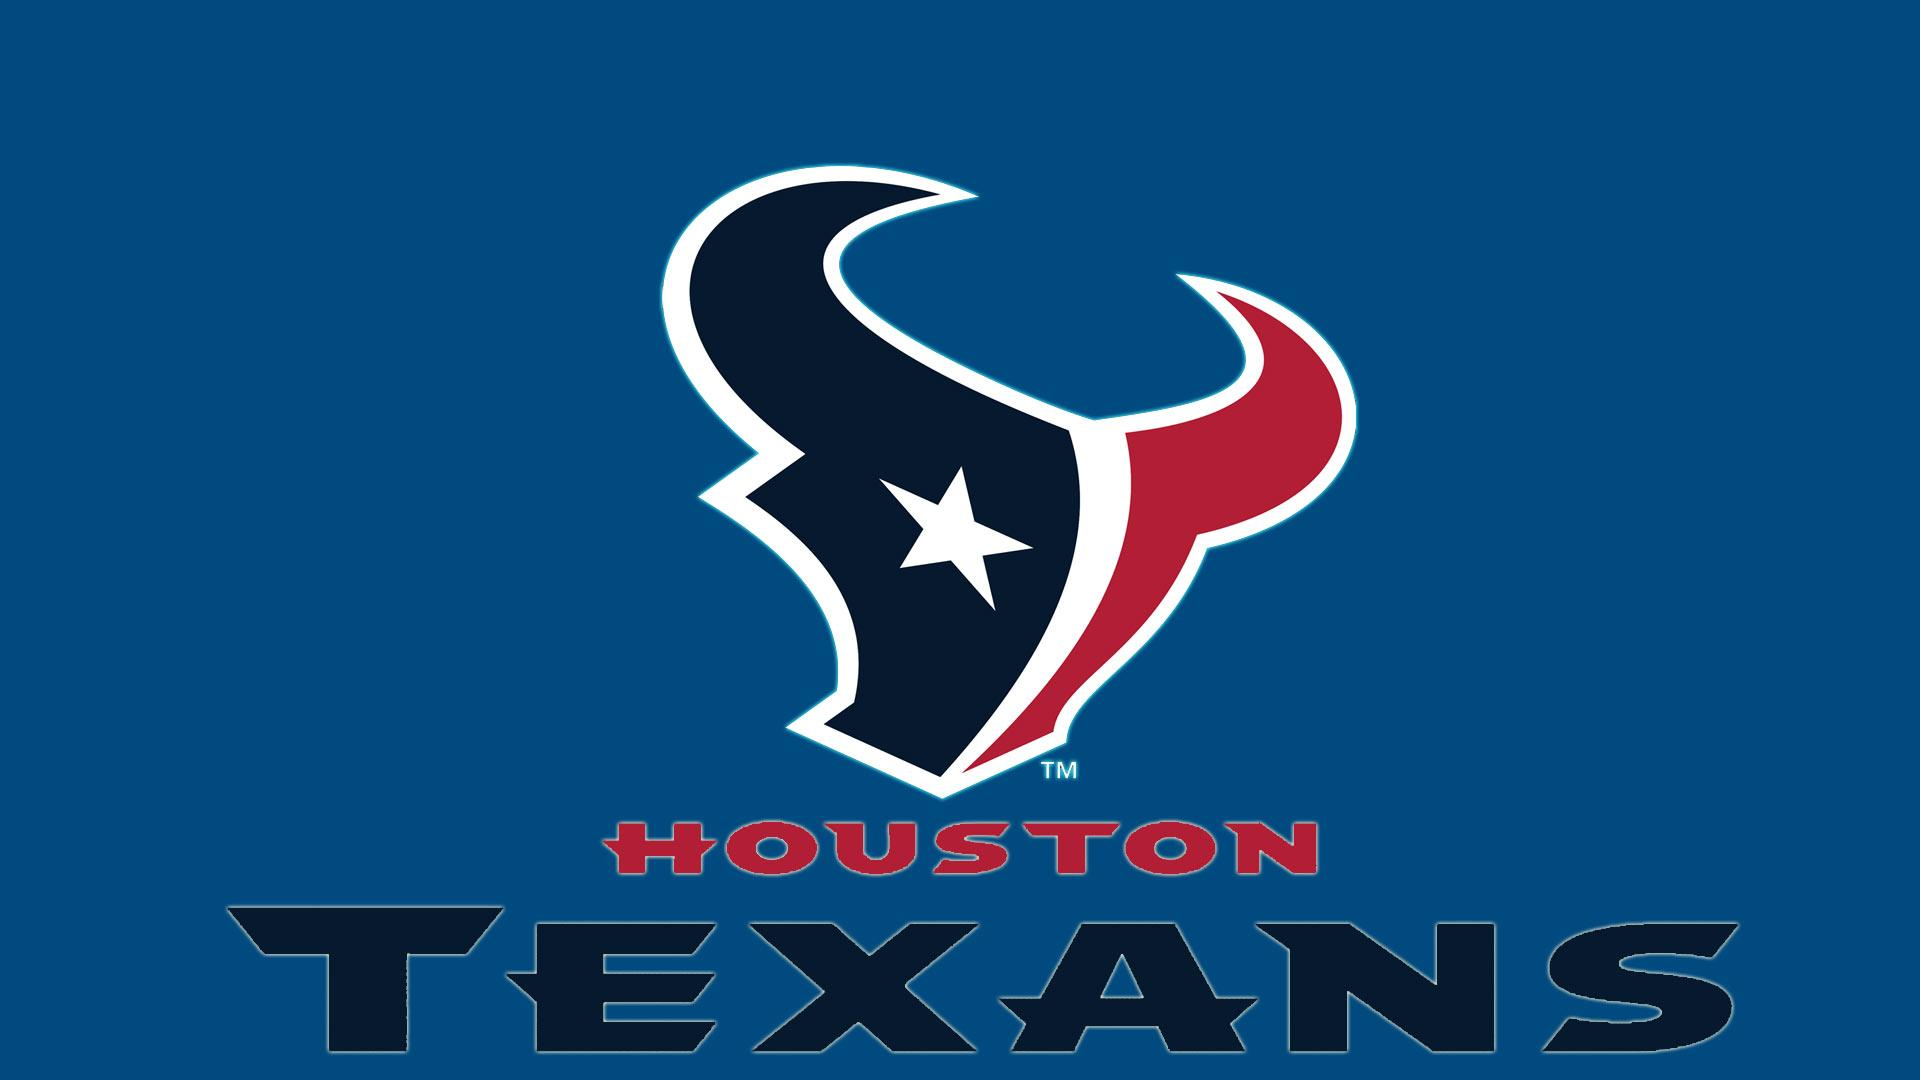 houston texans logo hd 1080p wallpaper screen size 1920 1080 wallpaper 1920x1080